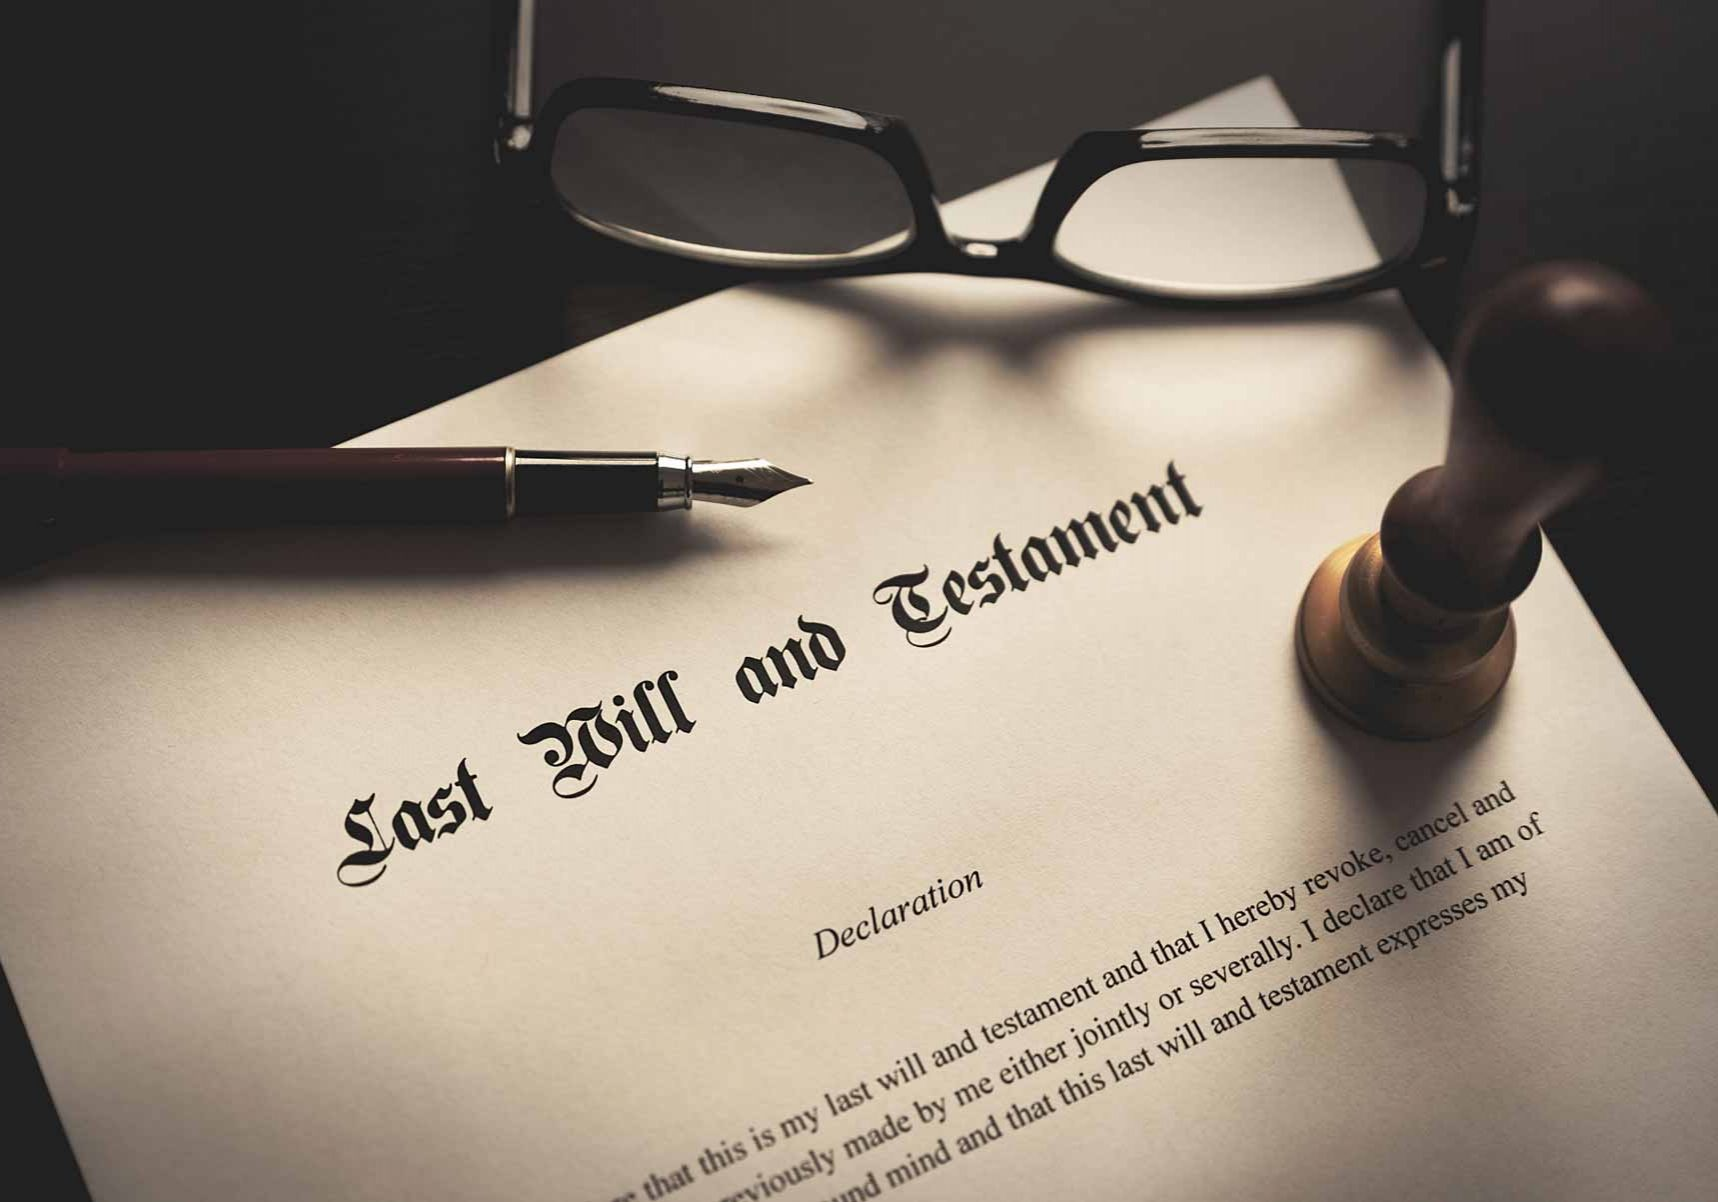 5 Things to Do Before Hiring a Probate Attorney